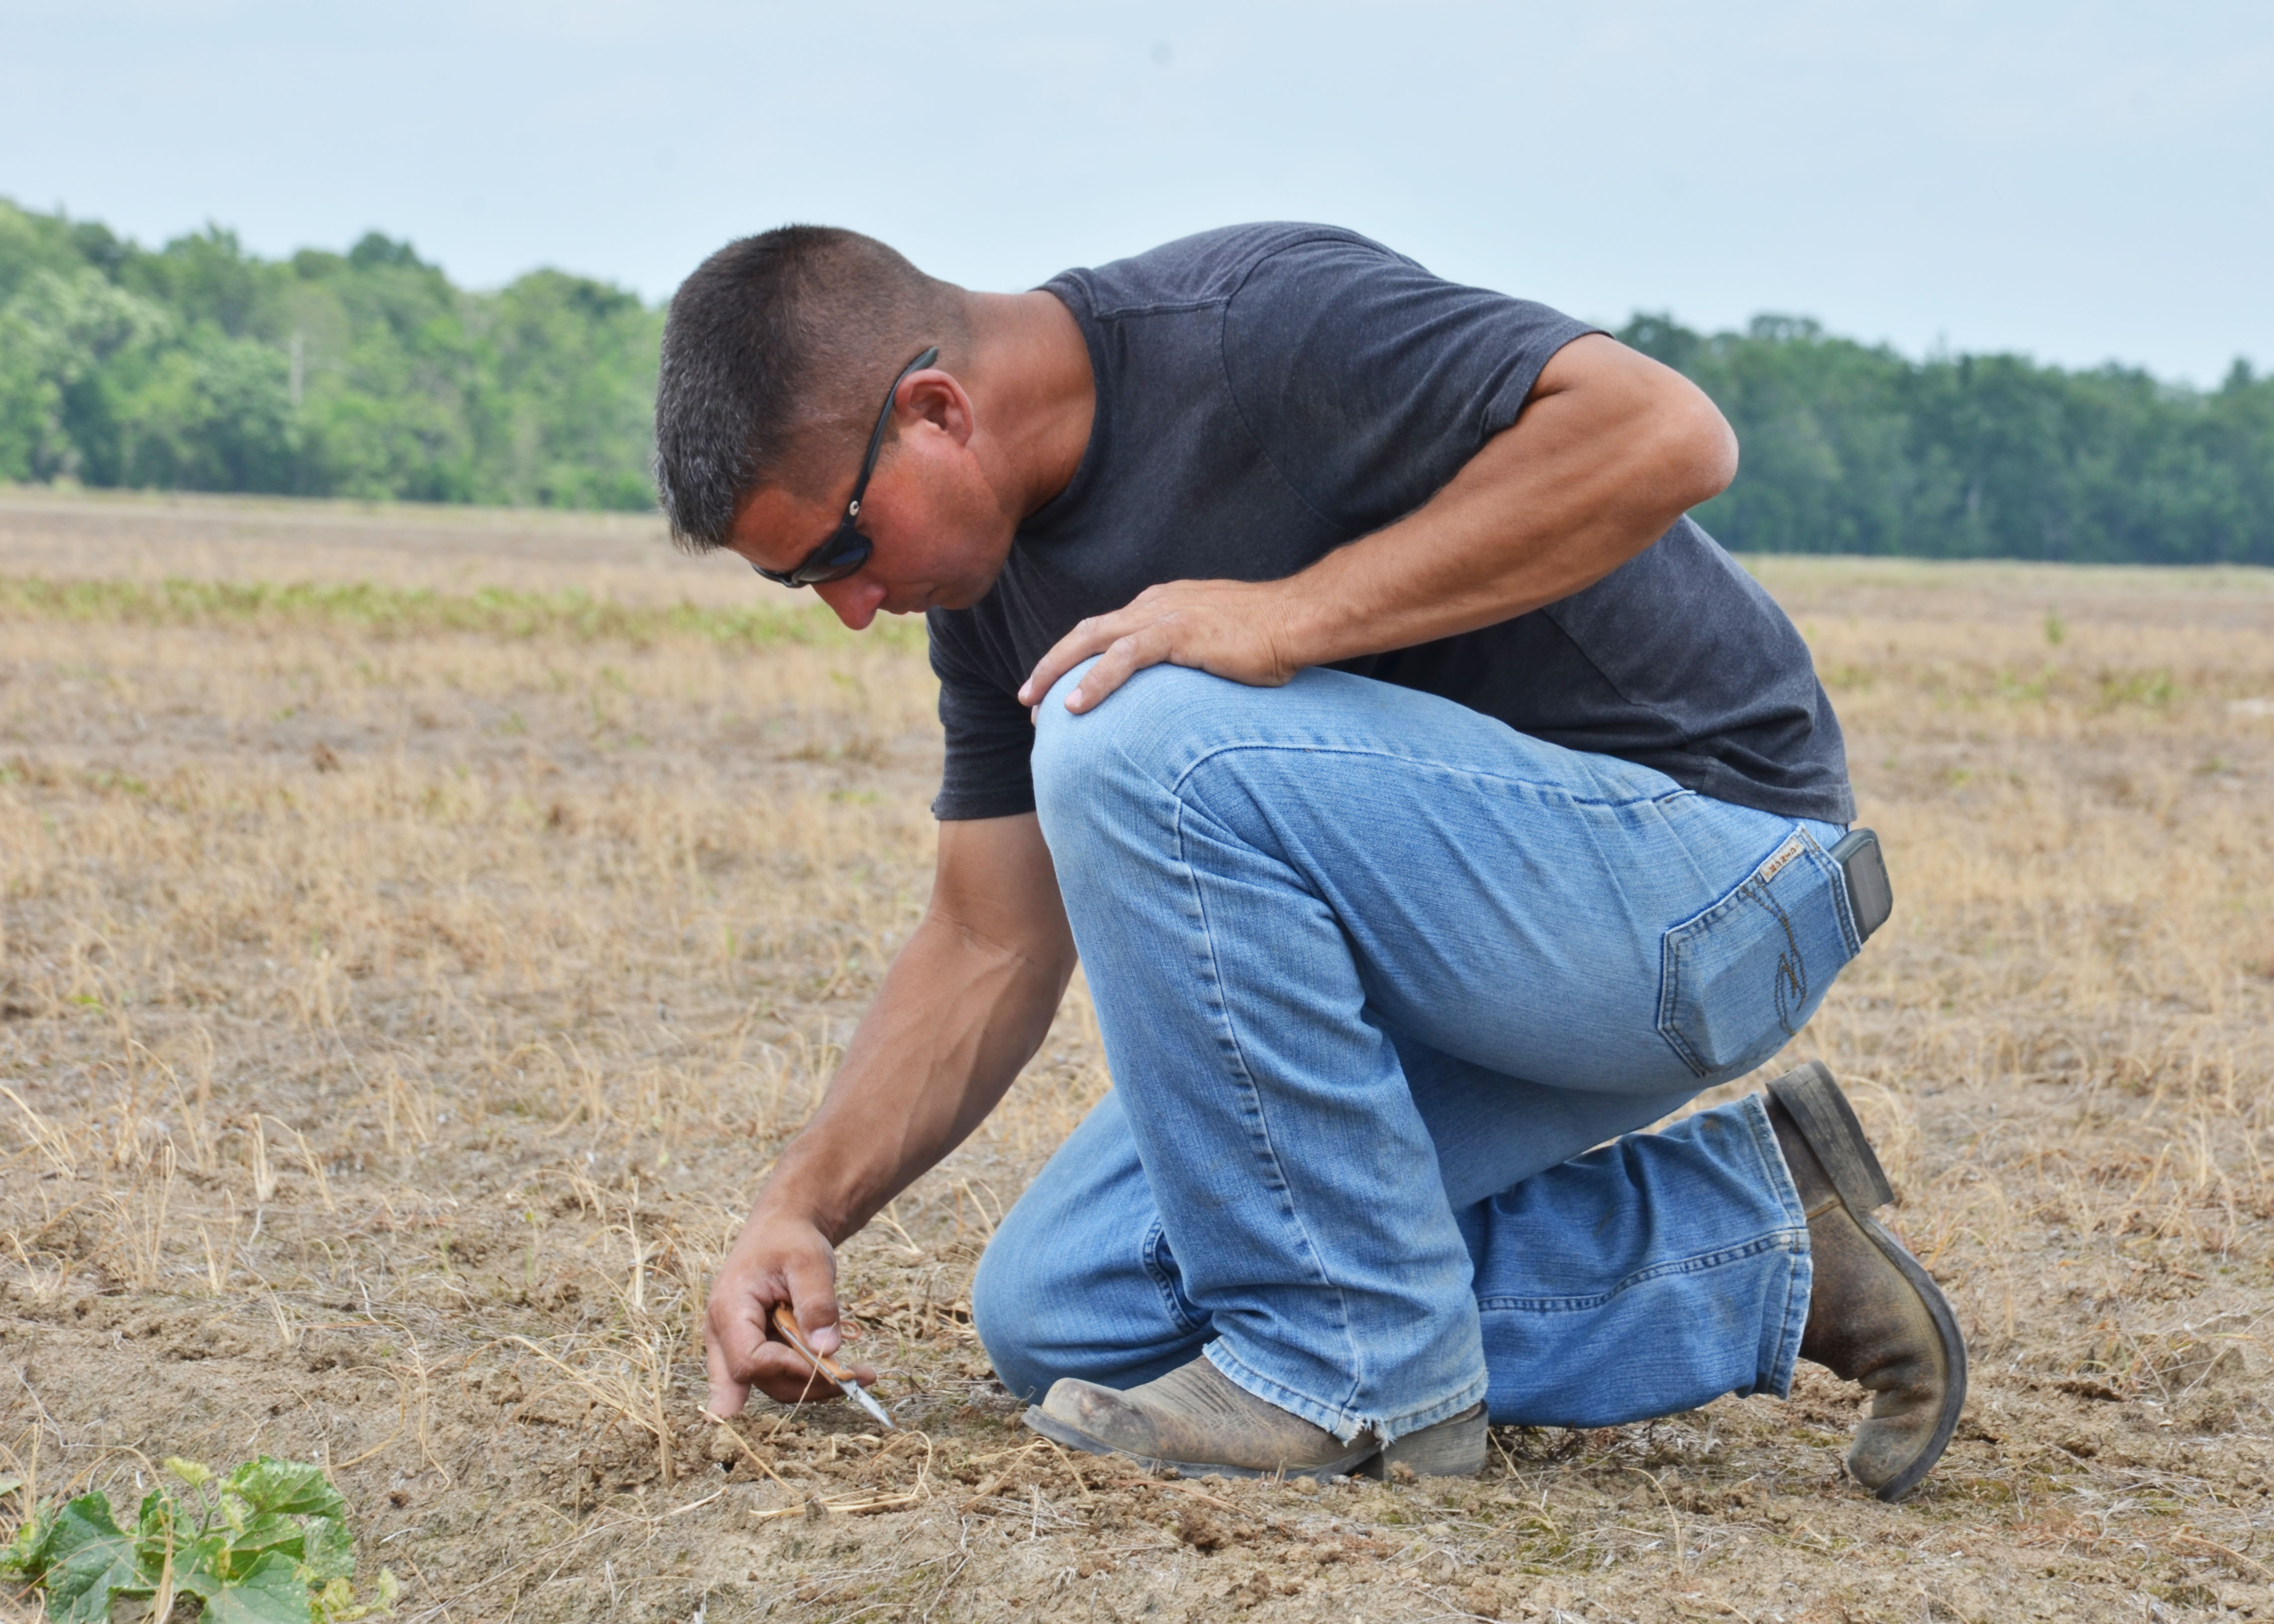 checking seed depth1.jpg thumbnail